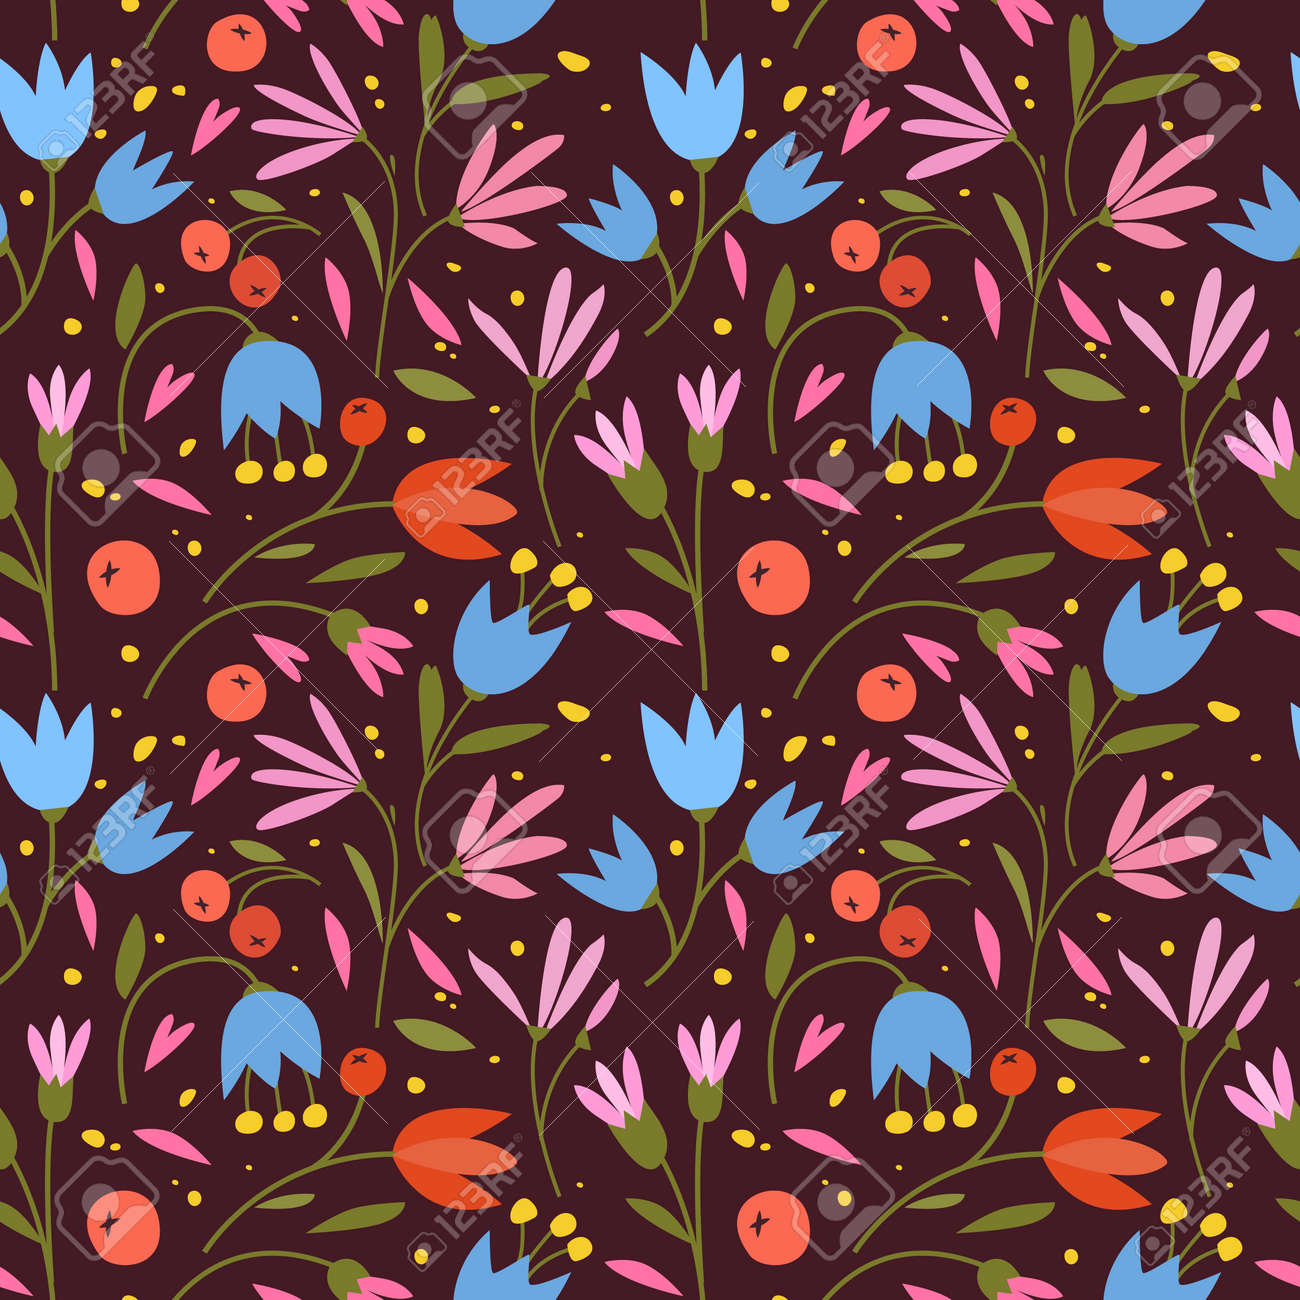 Cute seamless pattern with colorful small flowers. Small flowers on Dark background, Vector illustrations - 170709843